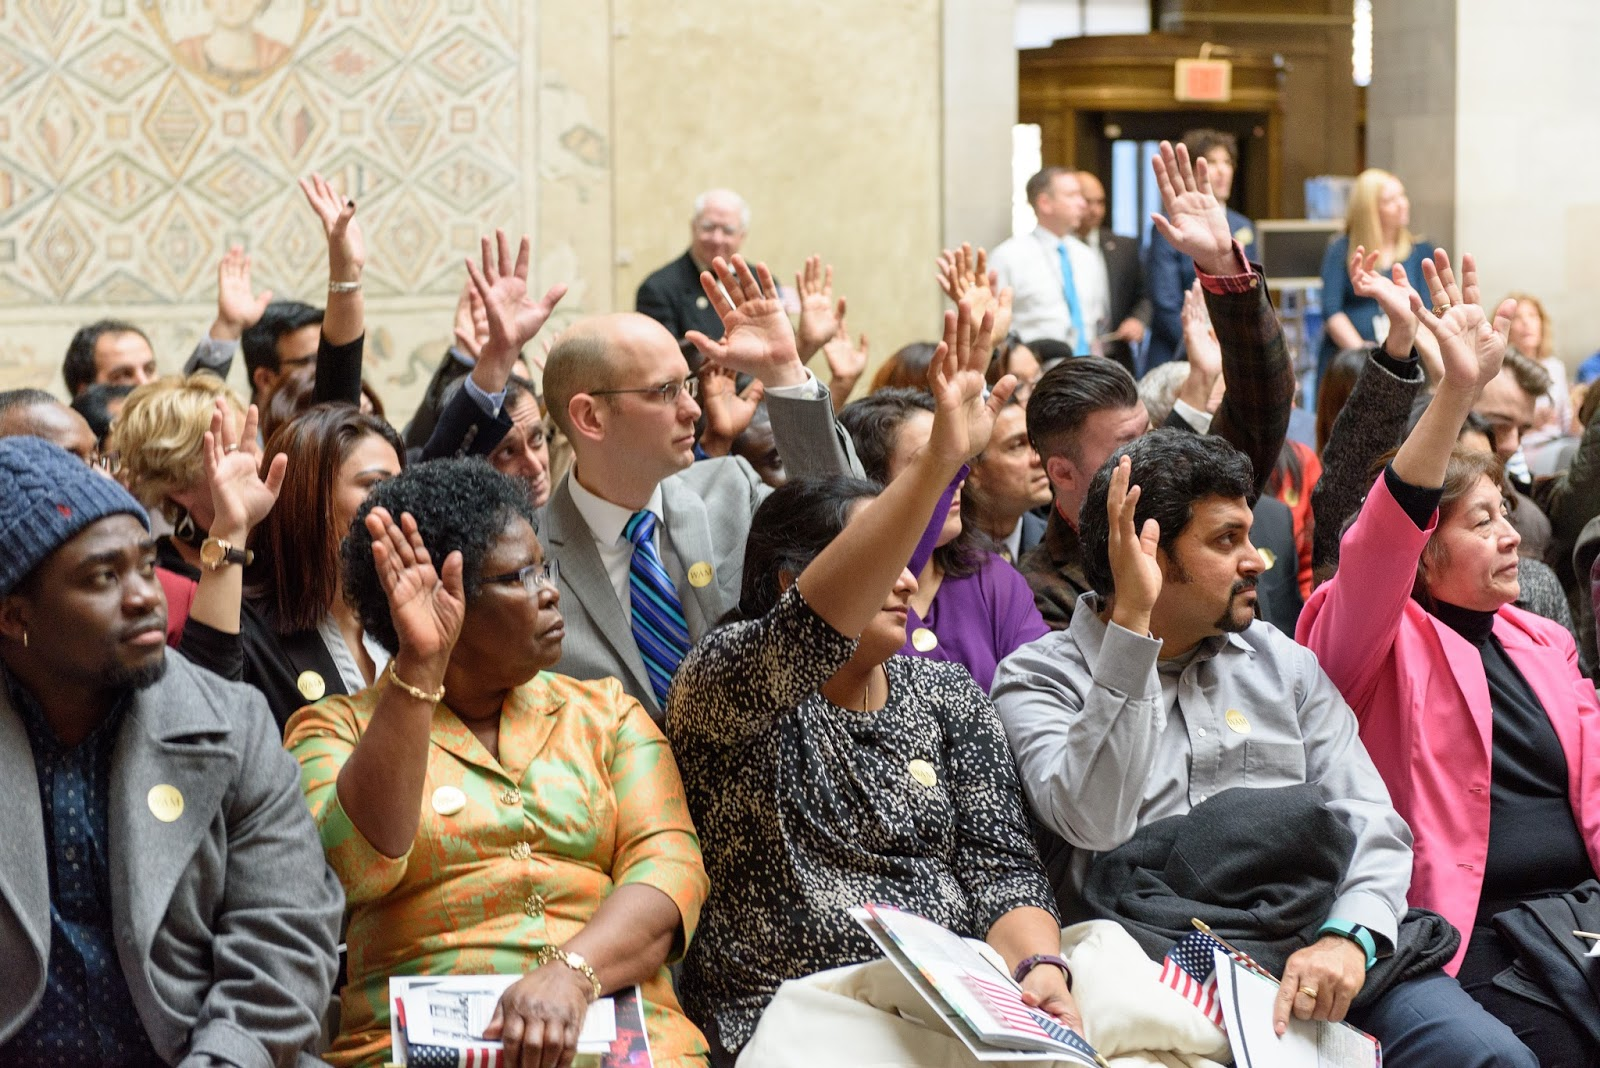 Welcoming New Citizens: A Natural Role for Museums – American